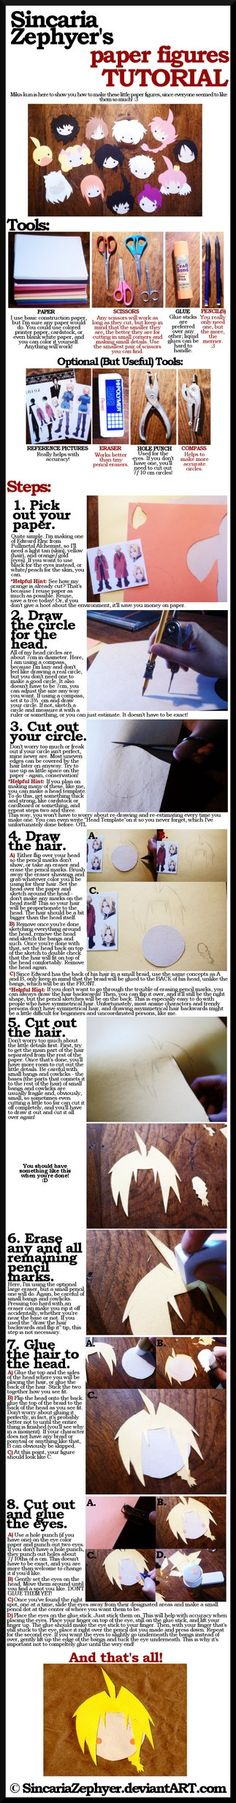 Anime Club craft idea!!! I TOTALLY HAVE TO DO THIS!!